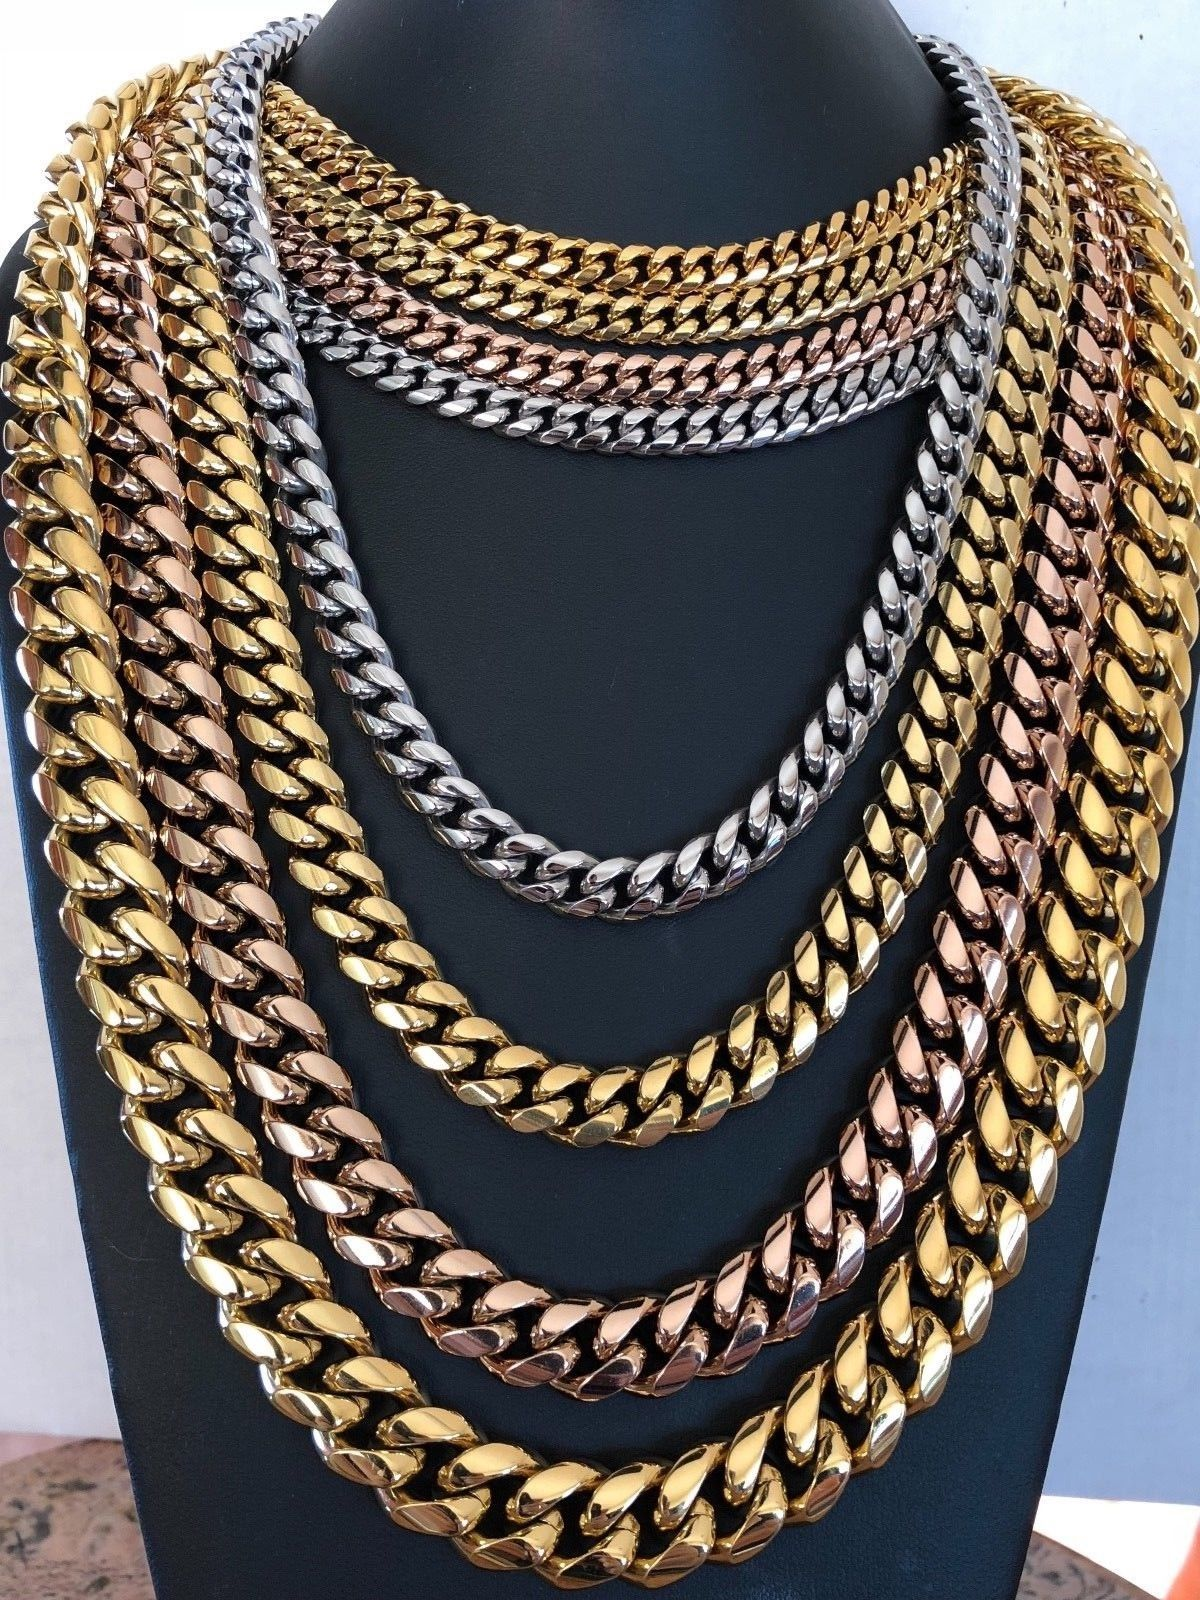 5fe48db663c564 Men's Miami Cuban Link Chain 14k 18k Gold Plated Stainless Steel BEST  QUALITY!